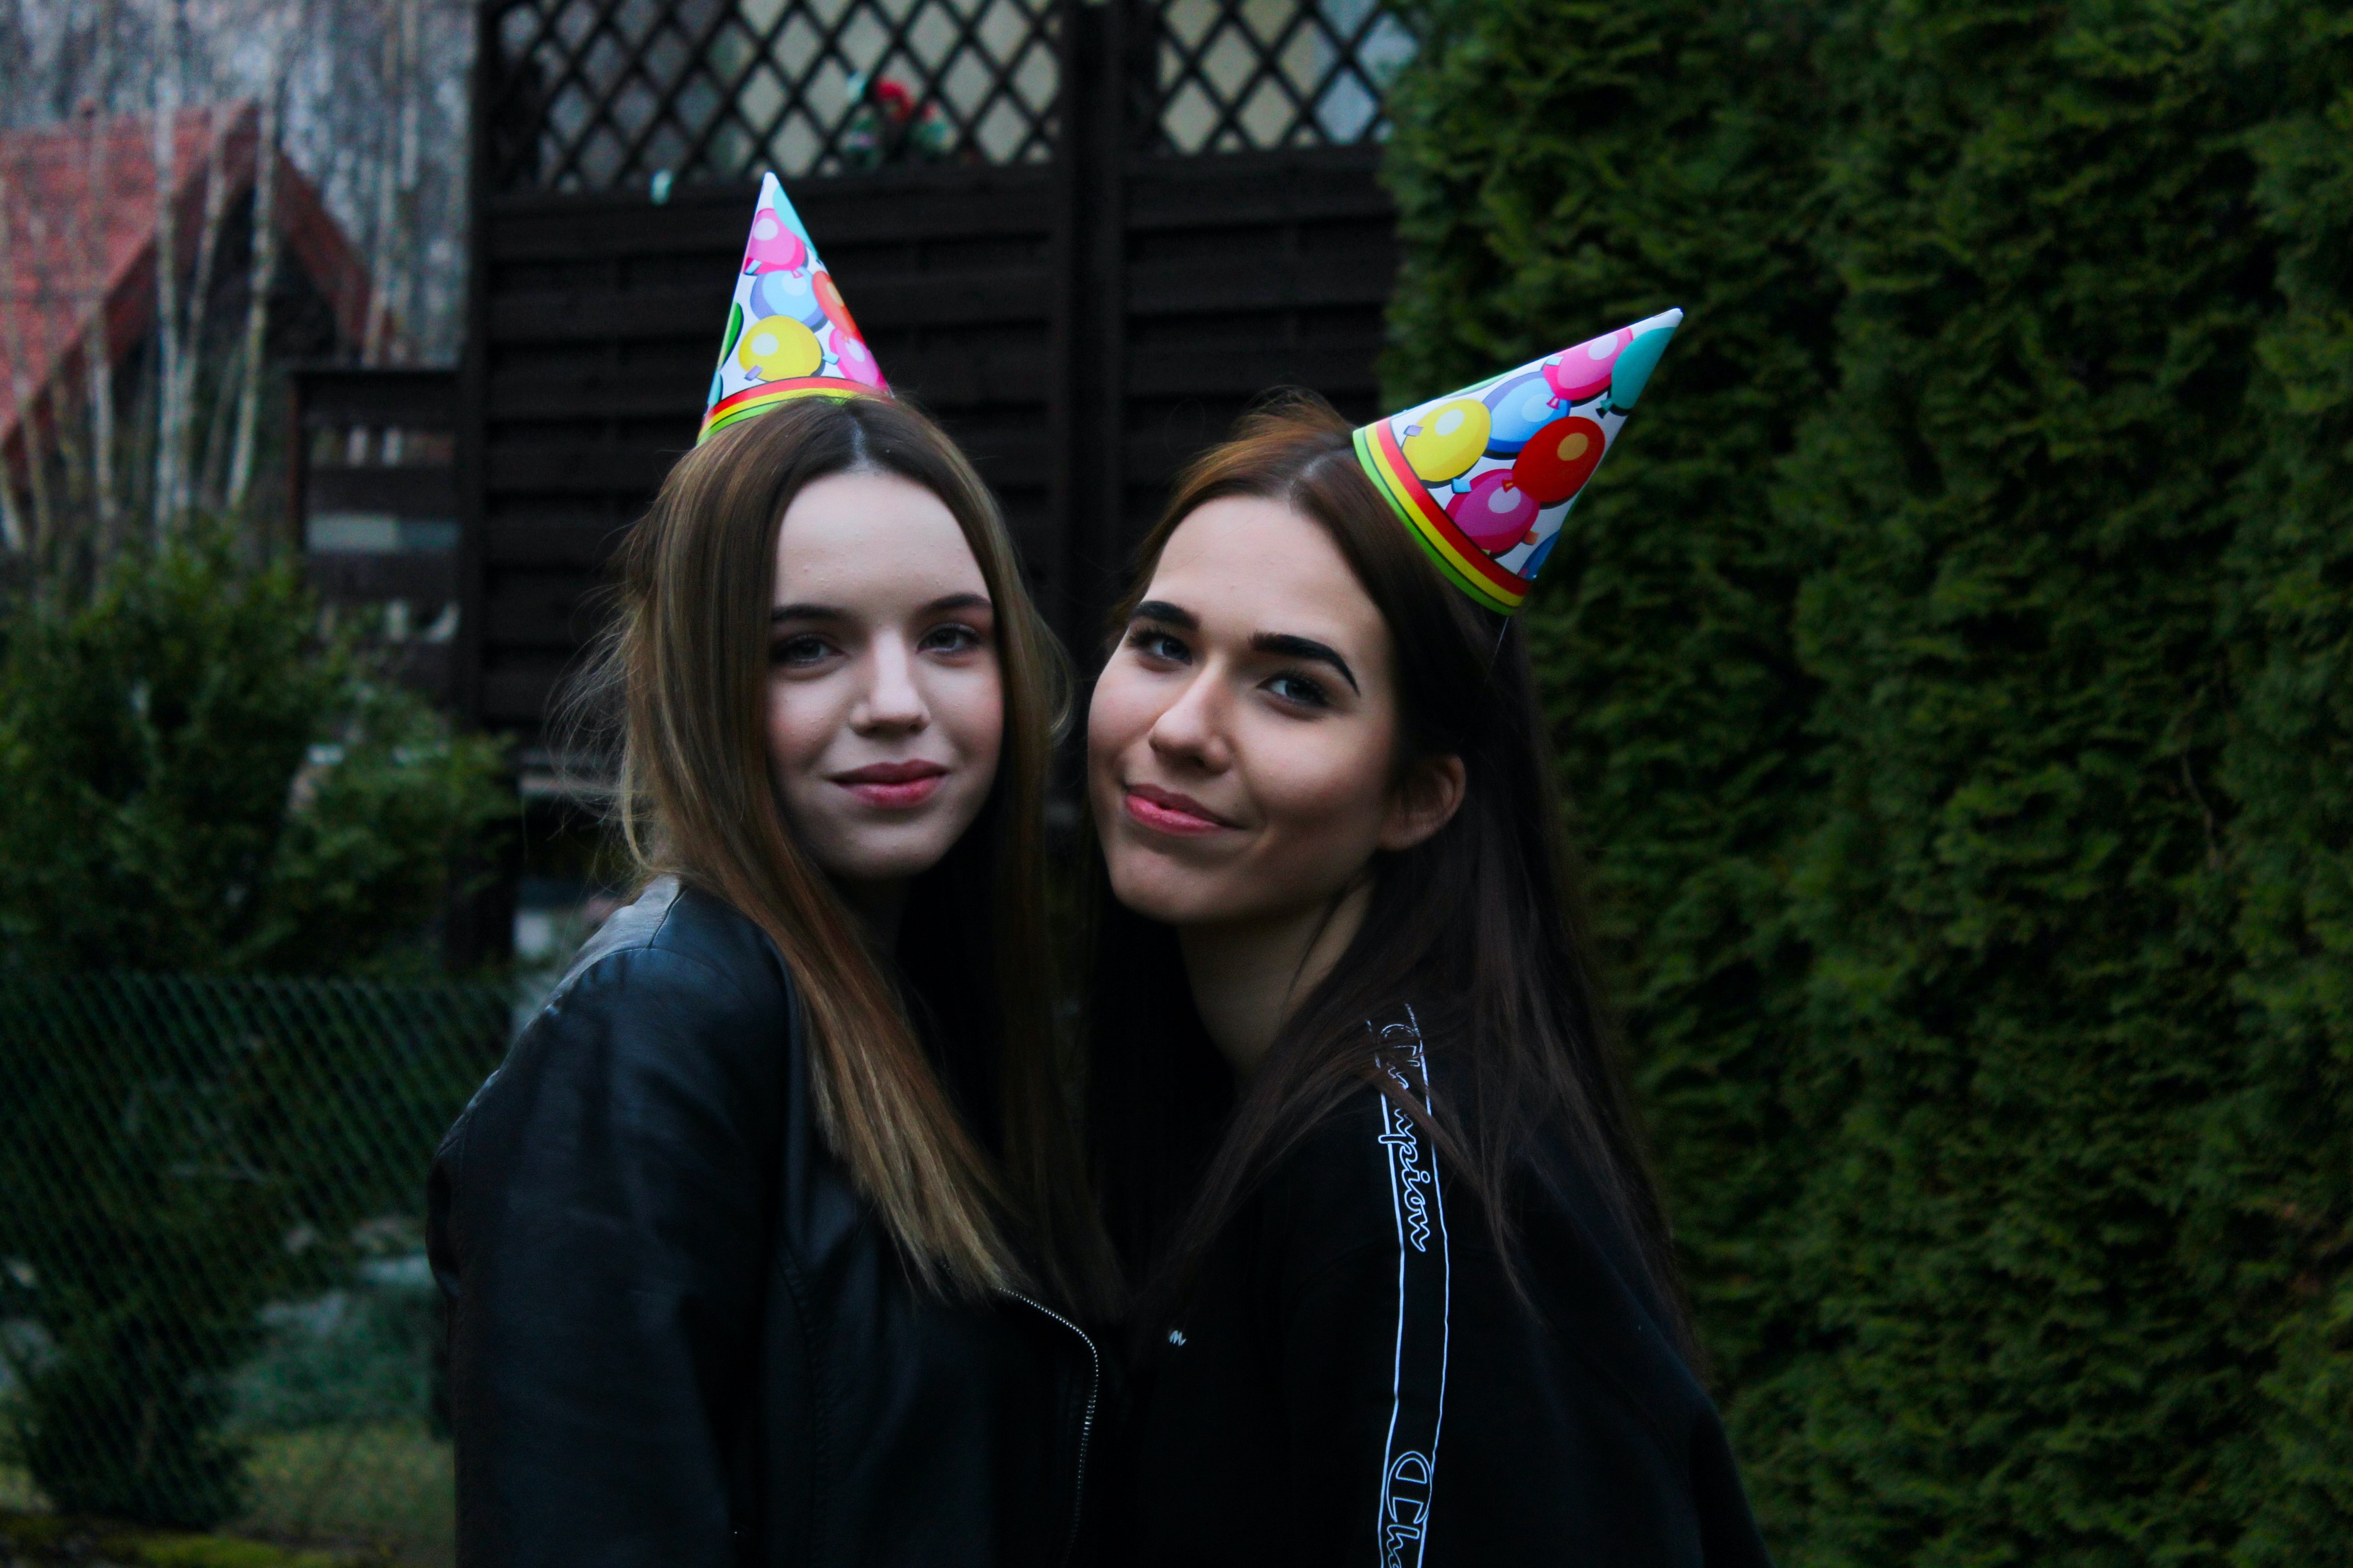 Two young women wearing birthday hats subtly smiling at the camera.